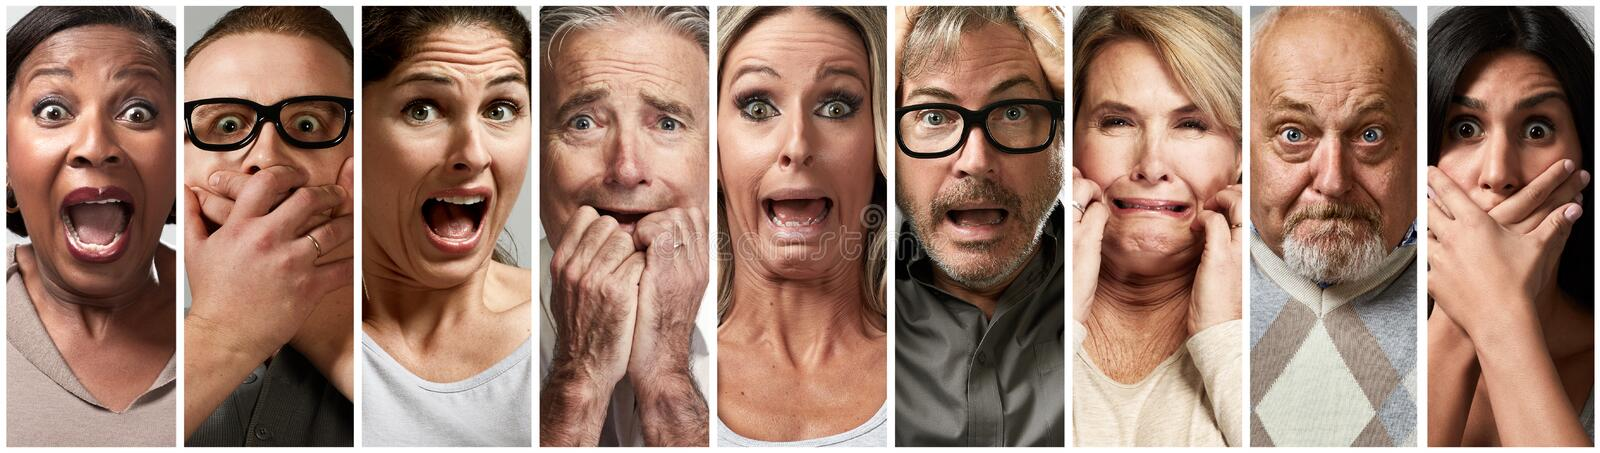 Scared fearful stressed people. Set stock image